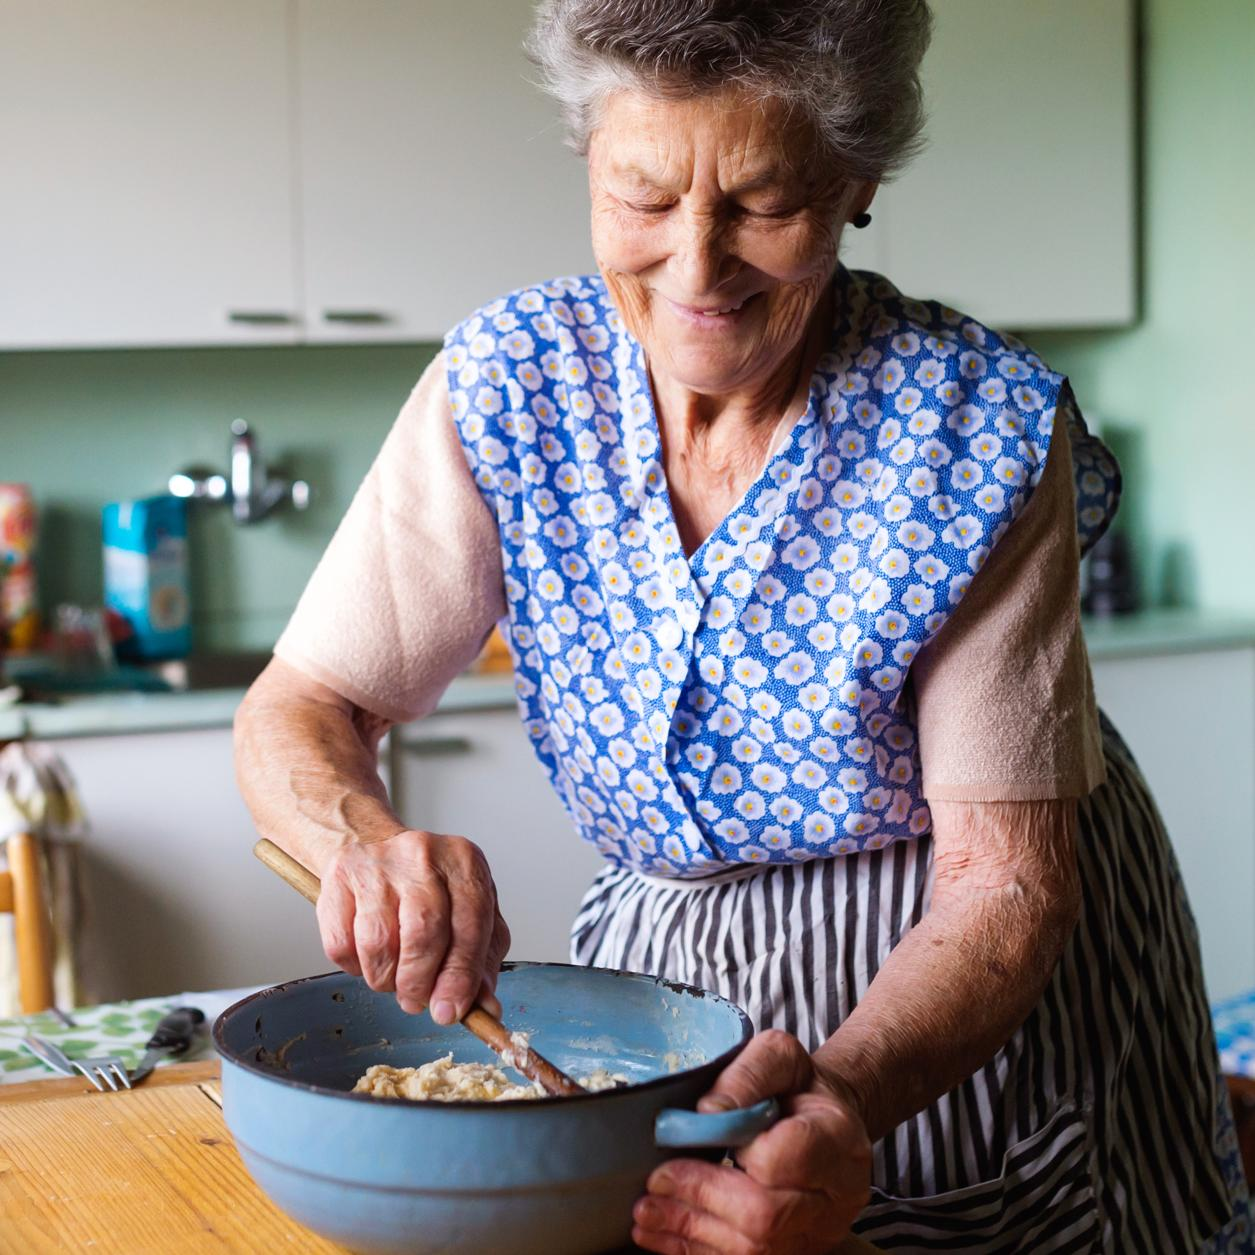 Malnutrition can become a worrying problem for elderly people who do not have the appropriate care in place – our CAREgivers ensure your loved ones achieve the right nutrition for a happy and healthy life.